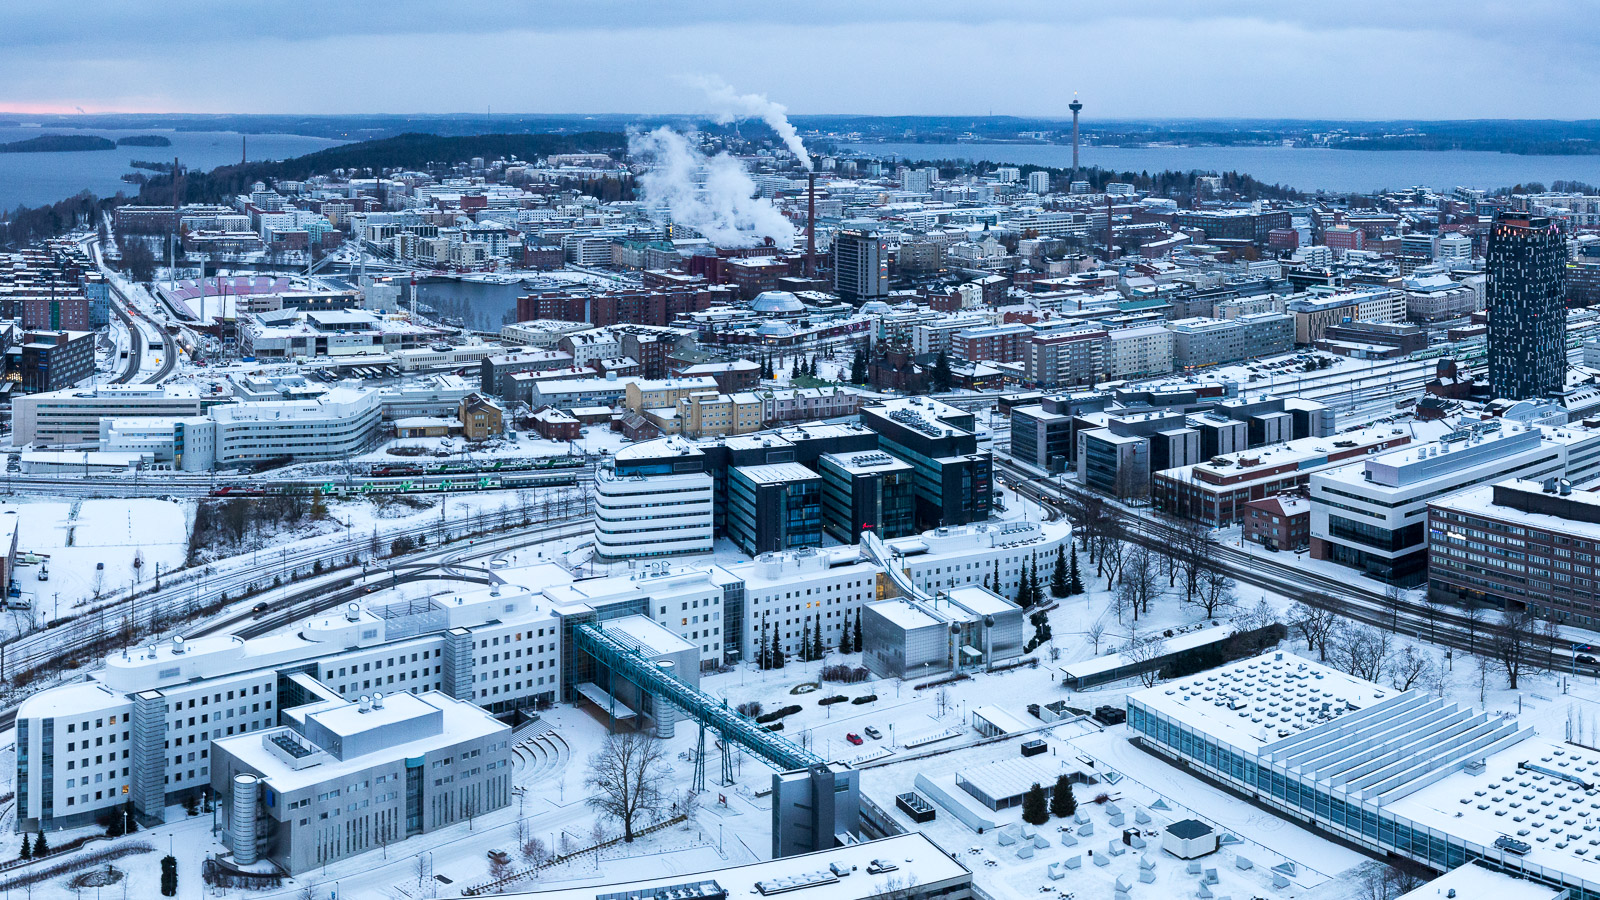 Tampere aerial photo